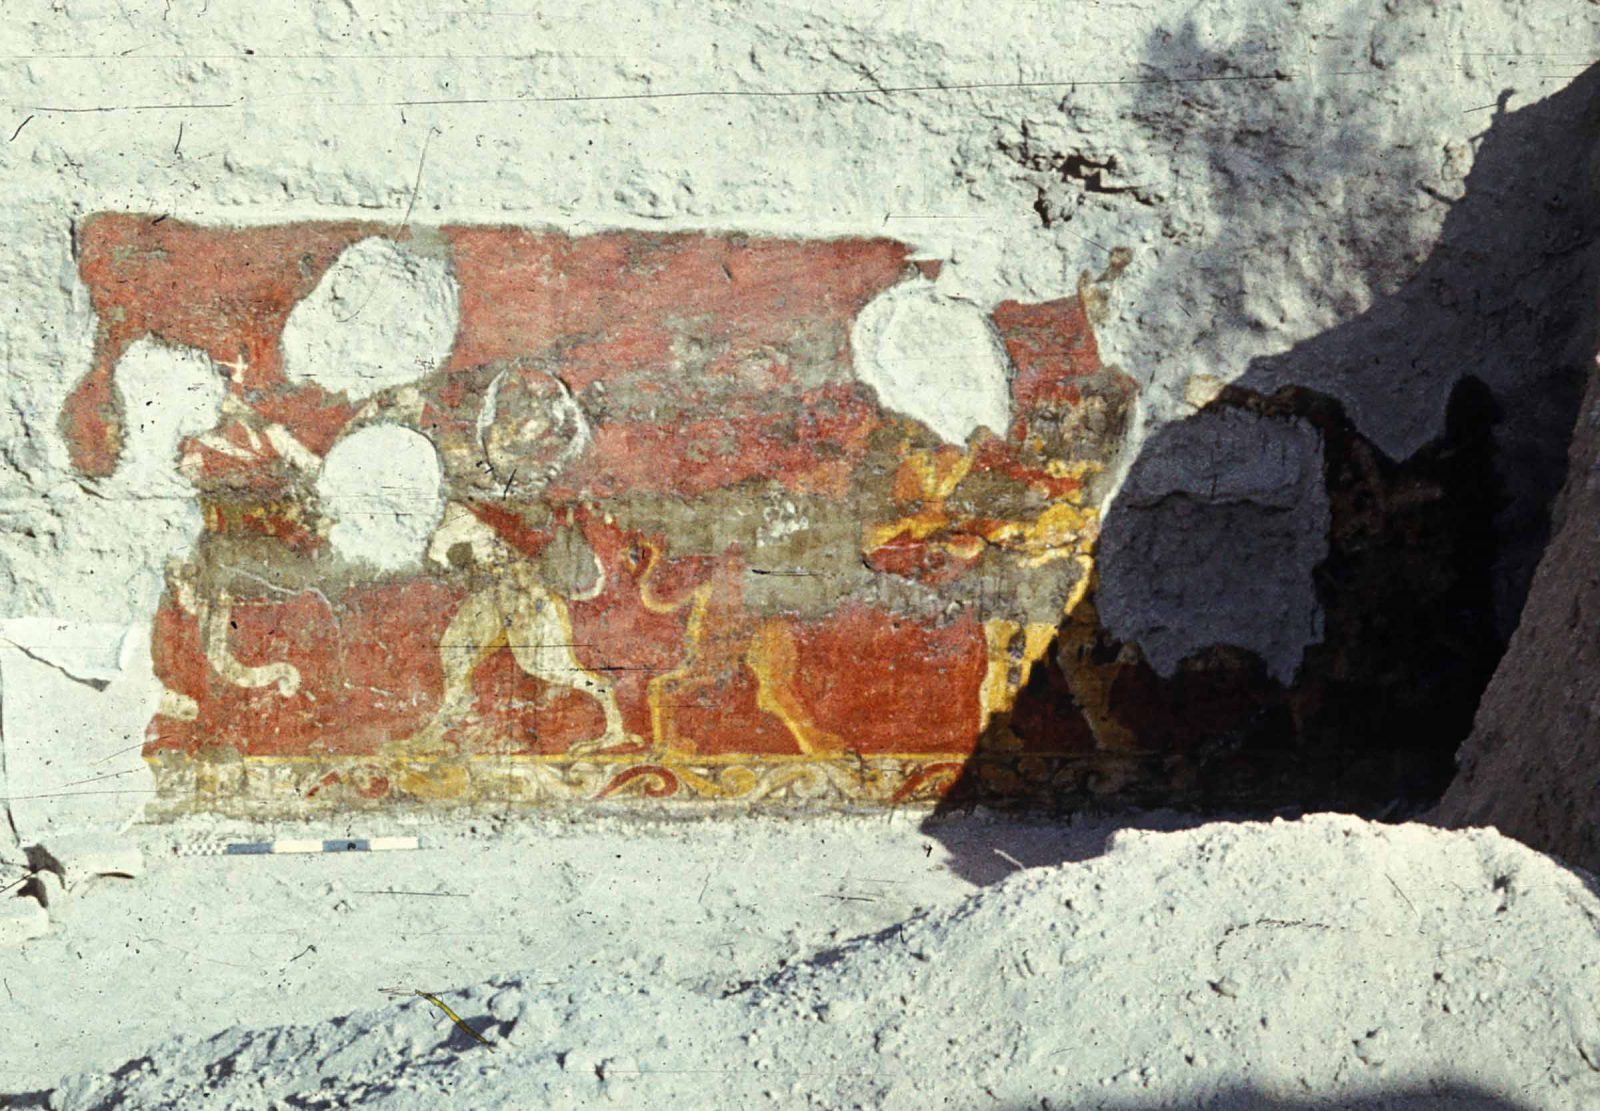 Wall painting found at the site of Varakhsha of a battle scene